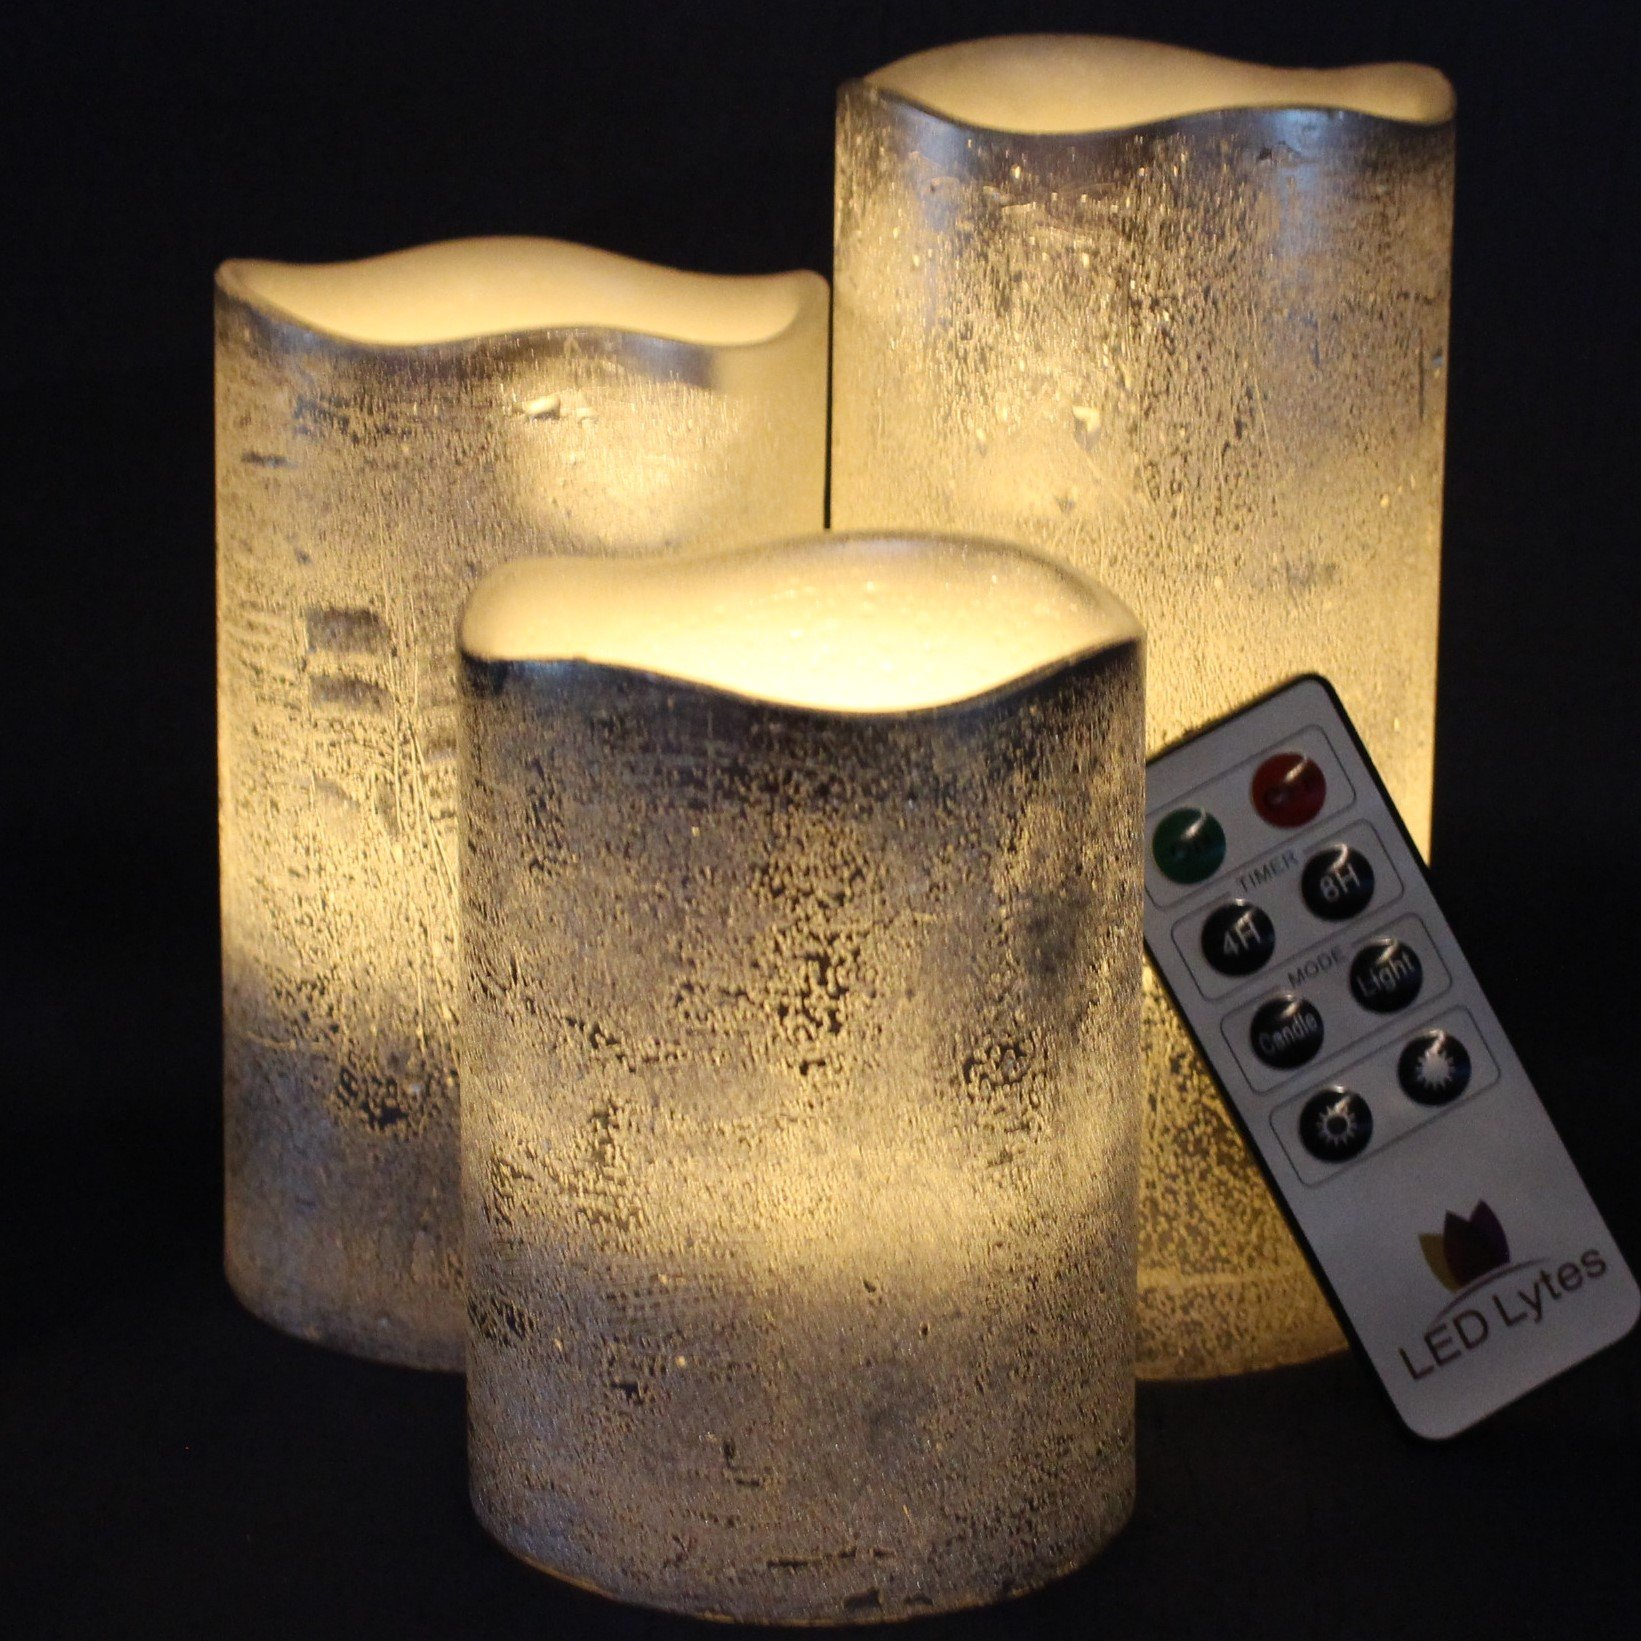 Battery Operated LED Flameless Candles - Set of 3 Round Rustic Silver Coated Ivory Wax with Warm White Flame Flickering LED Candles, auto-Off Timer Remote Control by LED Lytes by LED Lytes (Image #2)